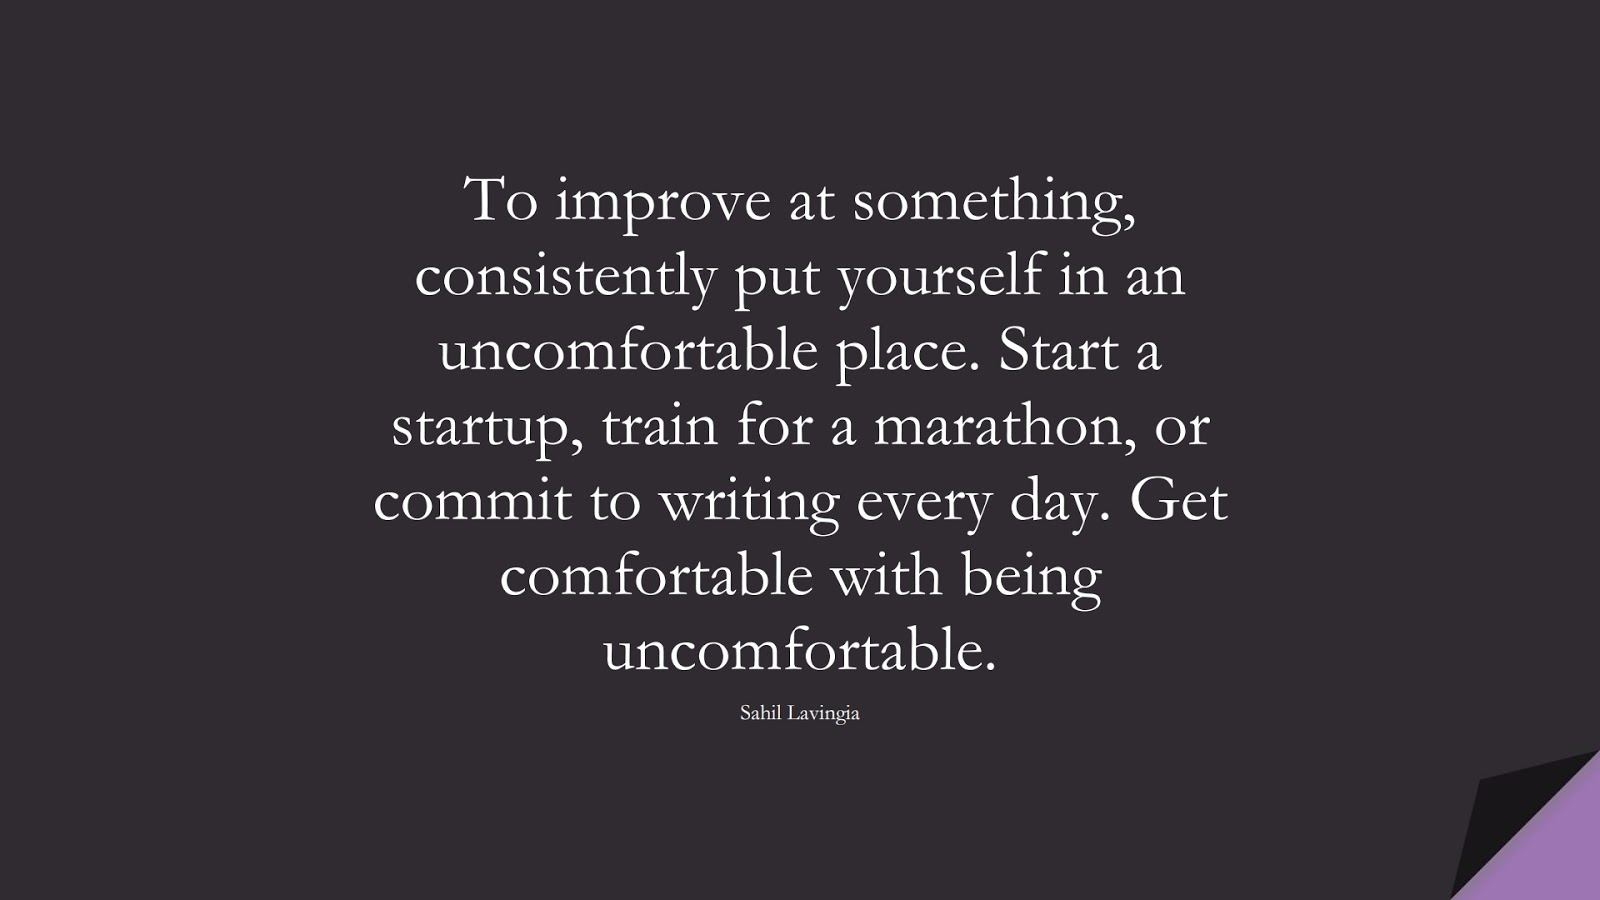 To improve at something, consistently put yourself in an uncomfortable place. Start a startup, train for a marathon, or commit to writing every day. Get comfortable with being uncomfortable. (Sahil Lavingia);  #CourageQuotes